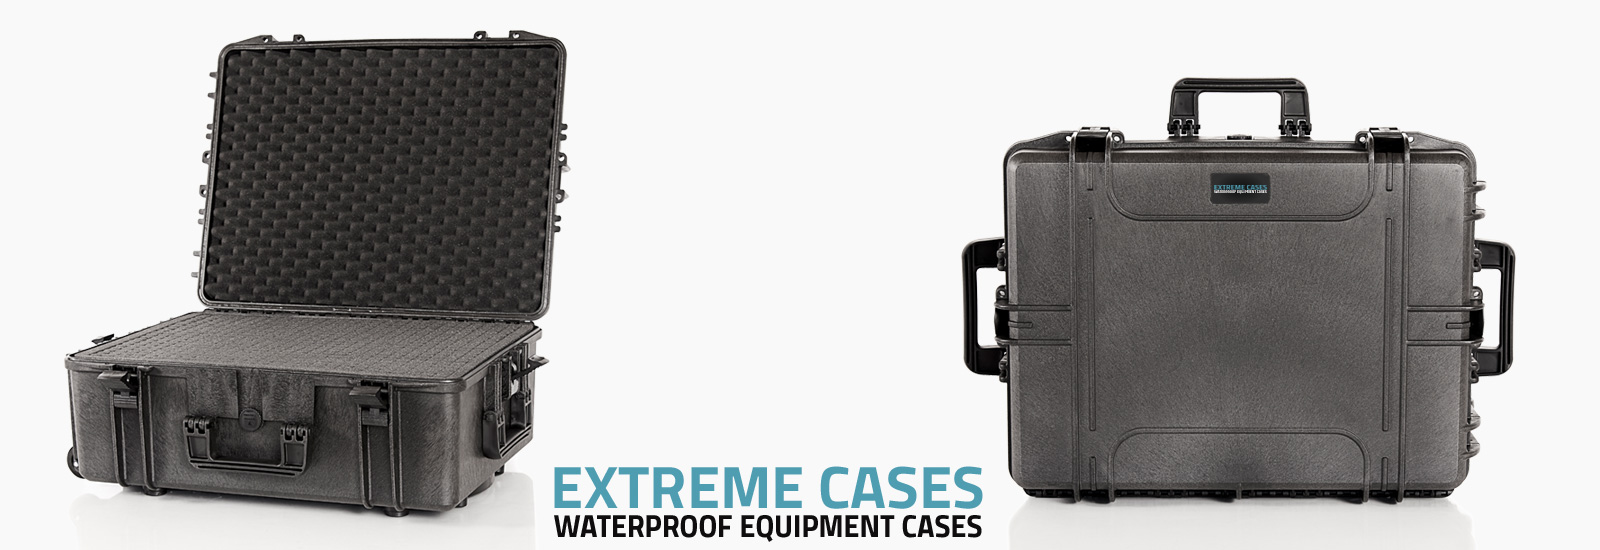 EXTREME Cases - Waterproof Equipment Cases